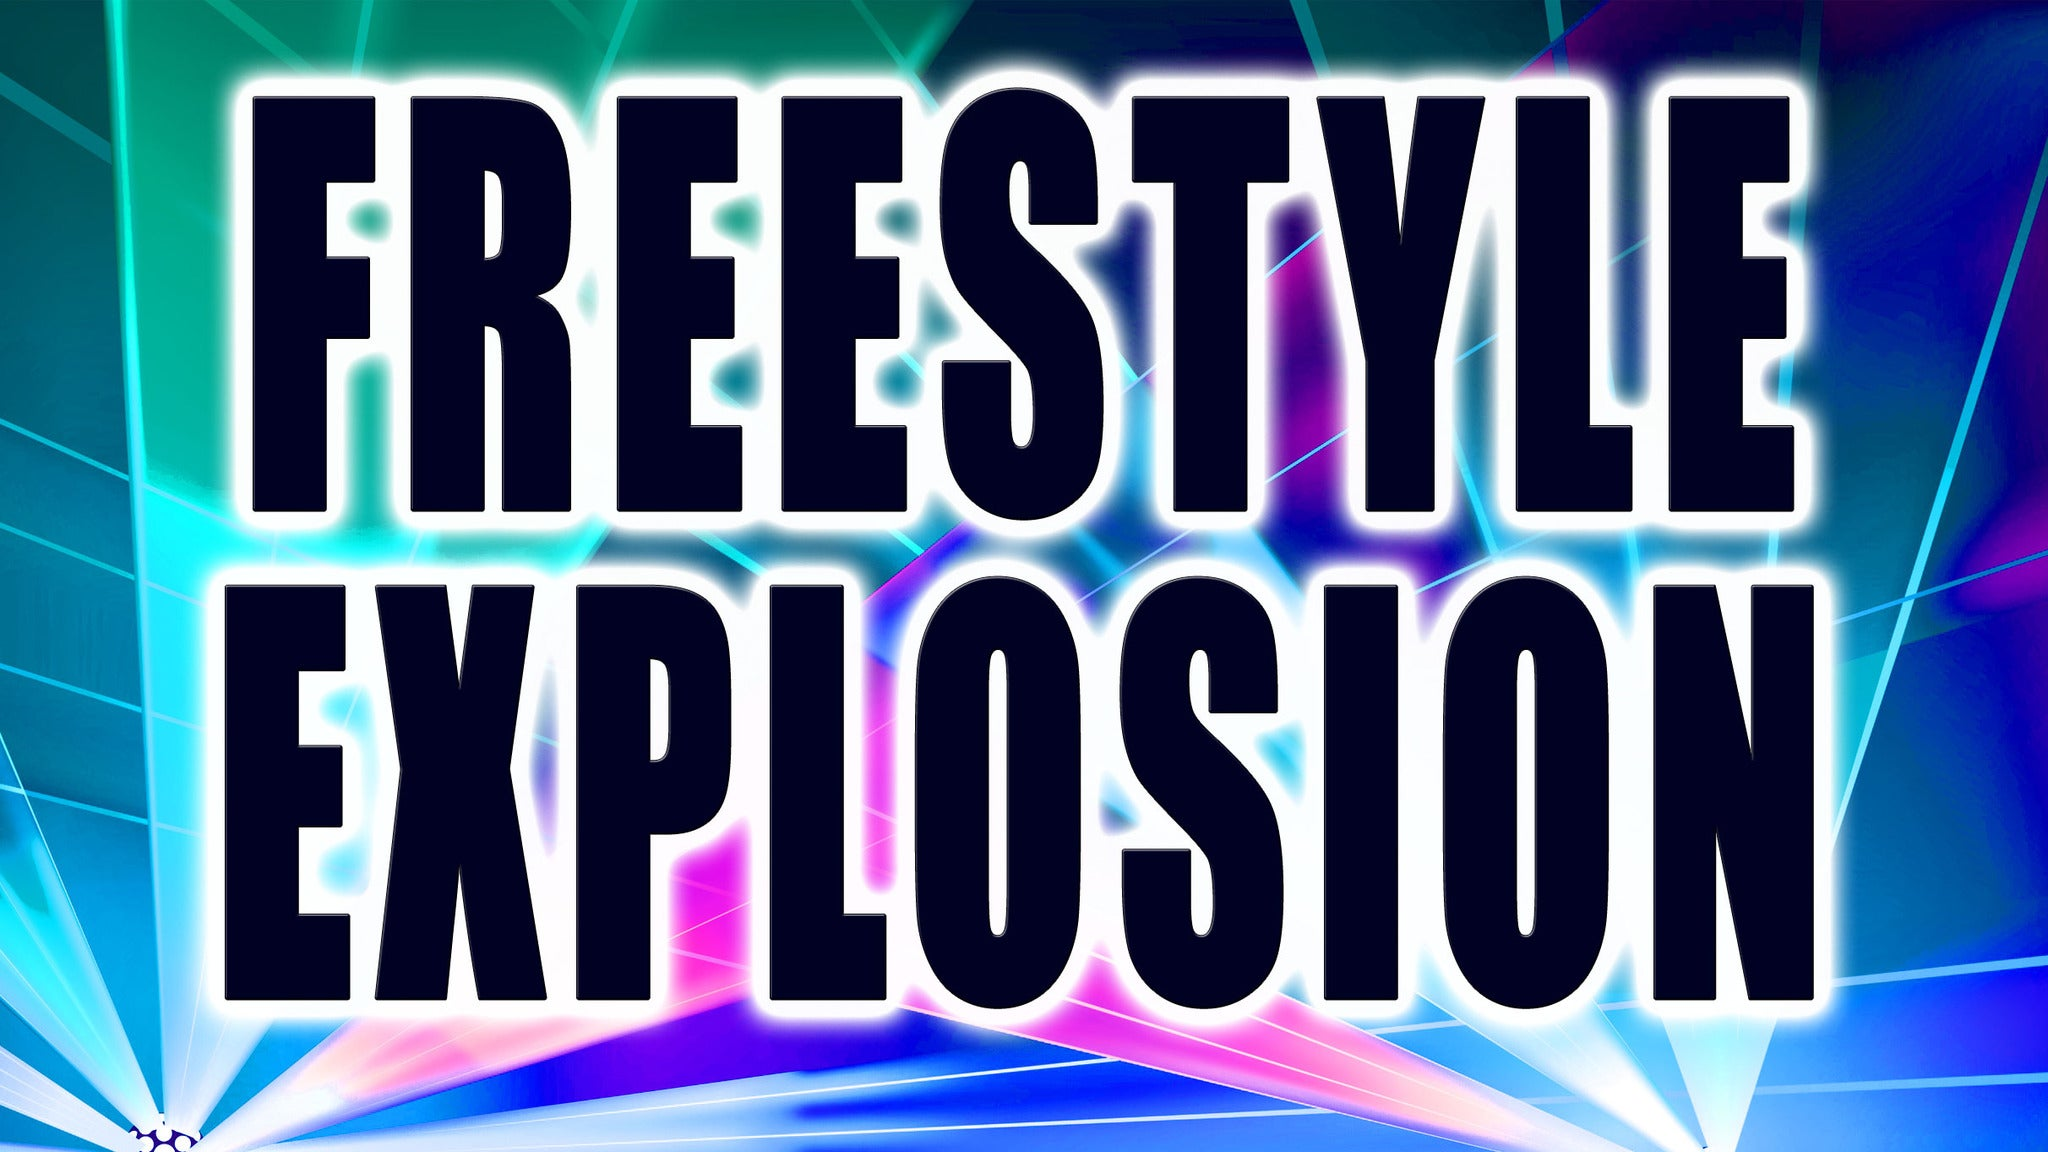 Premium Level Seating: Freestyle Explosion